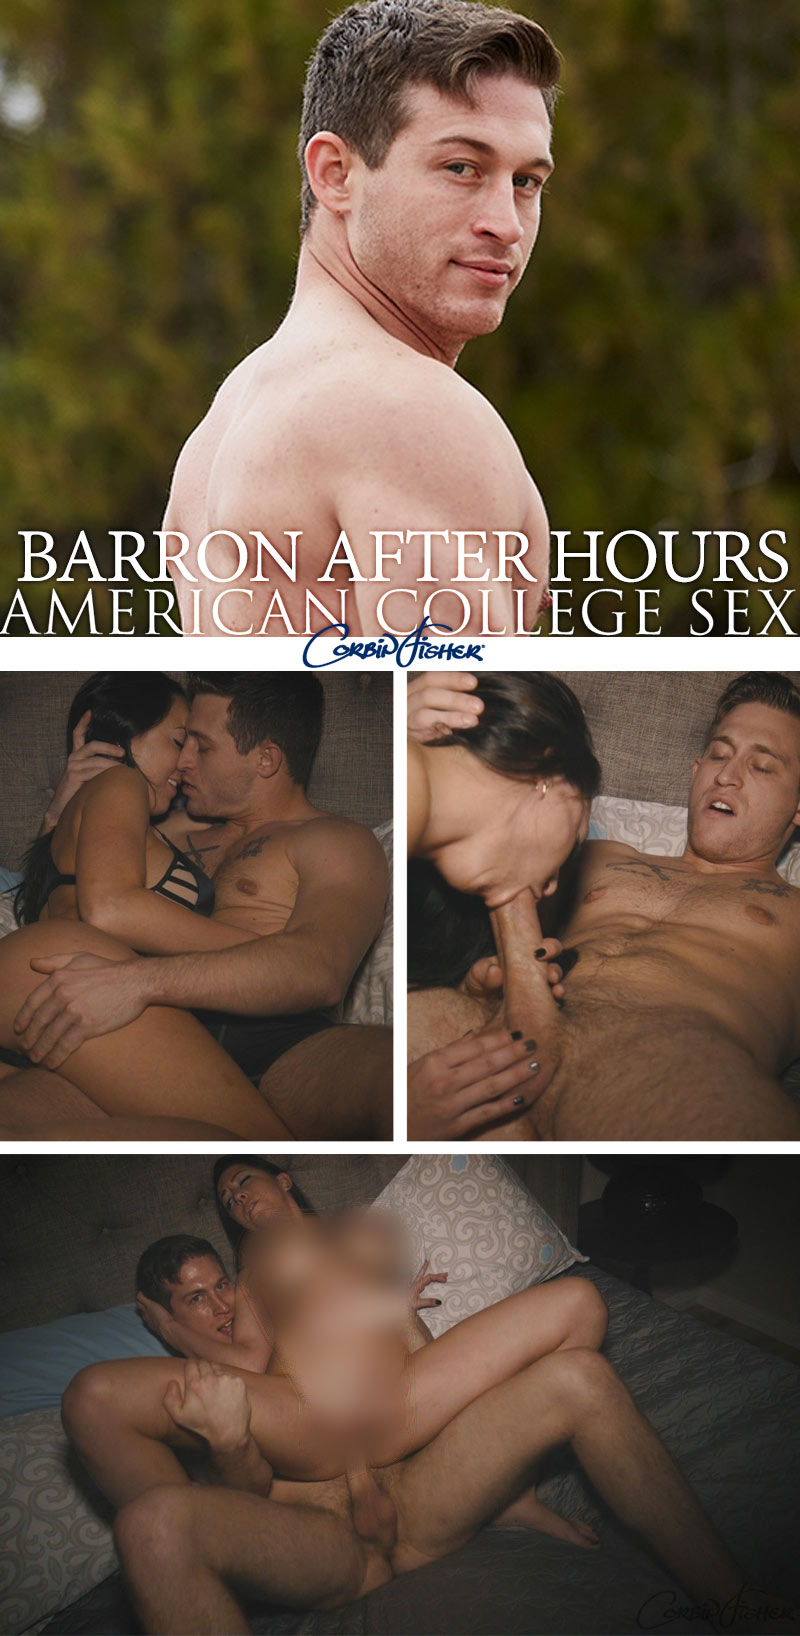 Barron After Hours at AmateurCollegeSex